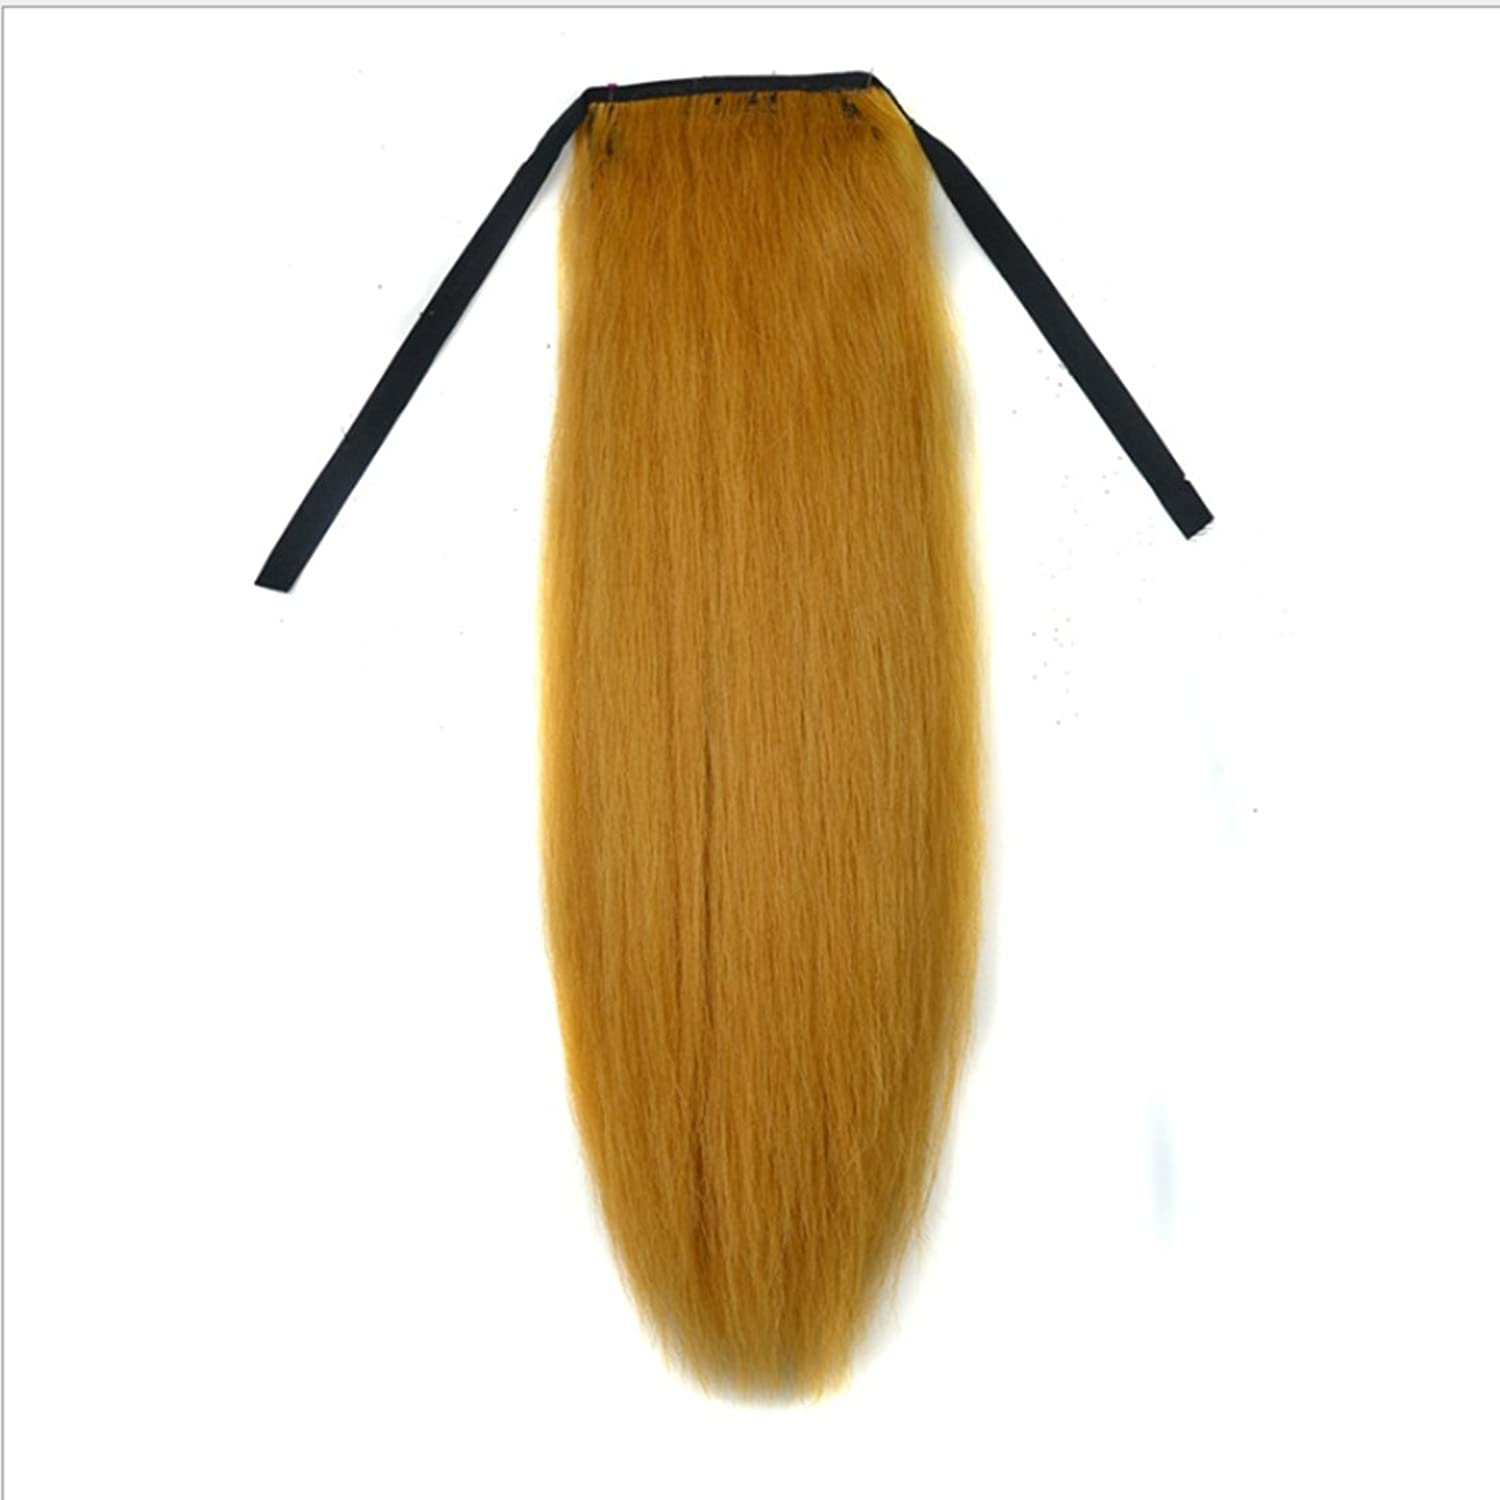 WEATLY 18inch Long Straight Mixed Real Hairpieces For Women Ponytail Natural colorTender Yellow Fluffy Straight Hair Extension Wigs For Not Hot Dyed (color   Tender yellow)